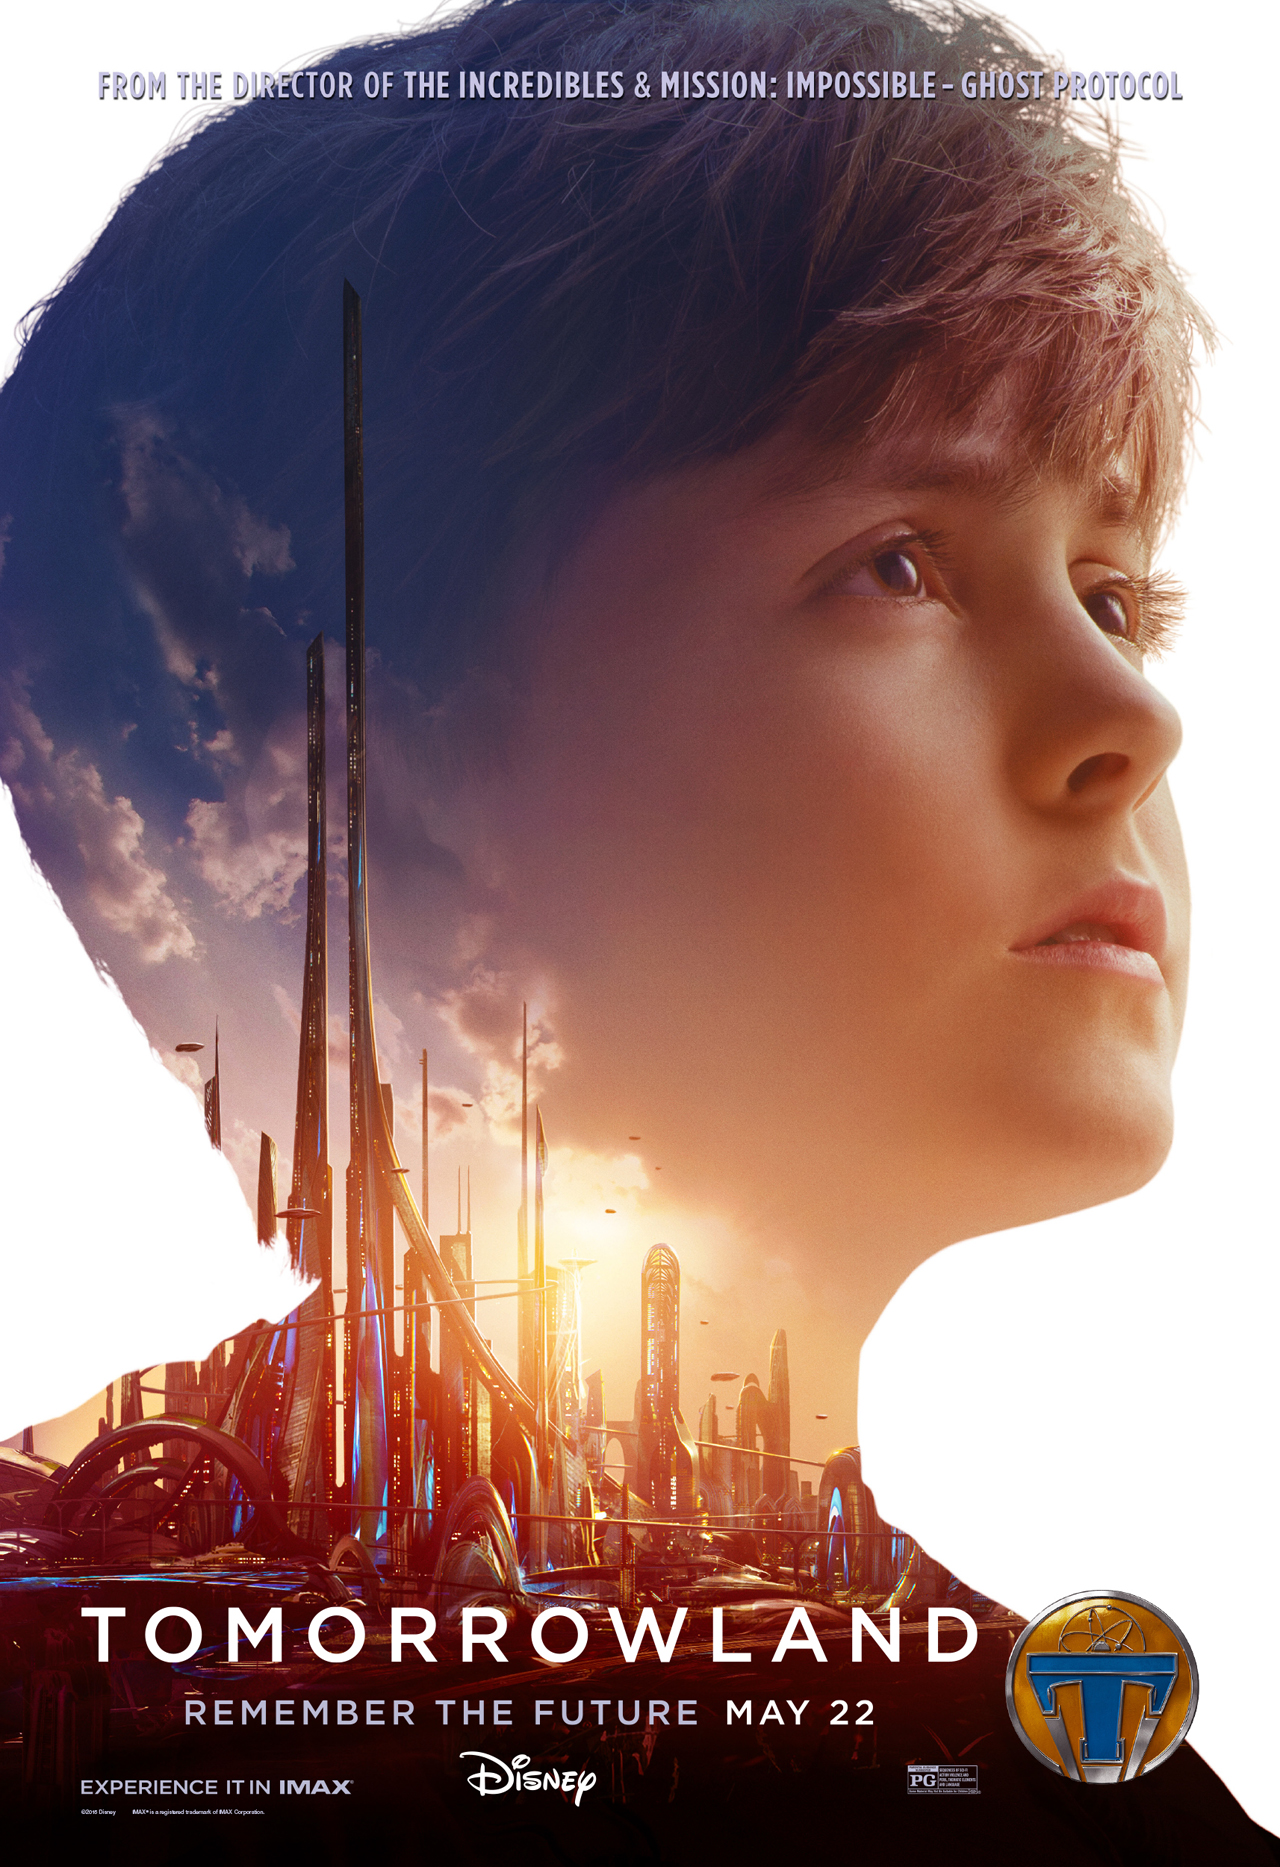 Tomorrowland Young Frank character poster